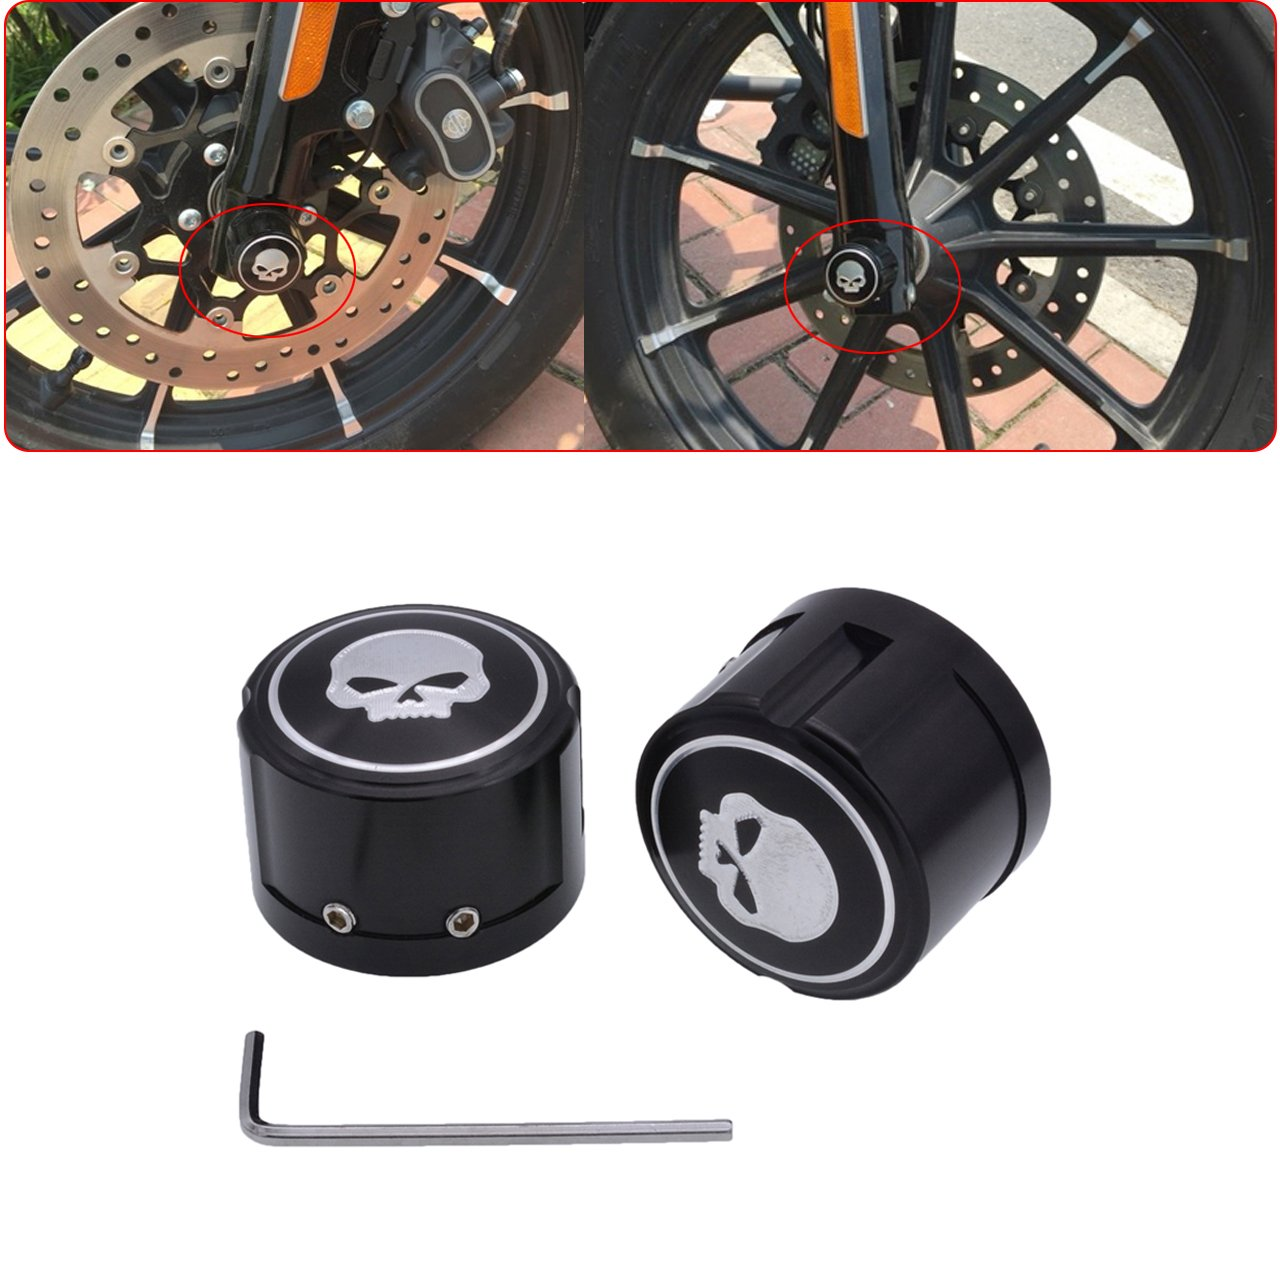 TUINCYN Motorcycle Aluminum Front Axle Cover Cap Nut Bolt Skull Decorative Hardware Kit For Harley Sportster XL883 XL1200 Black (1 pair)